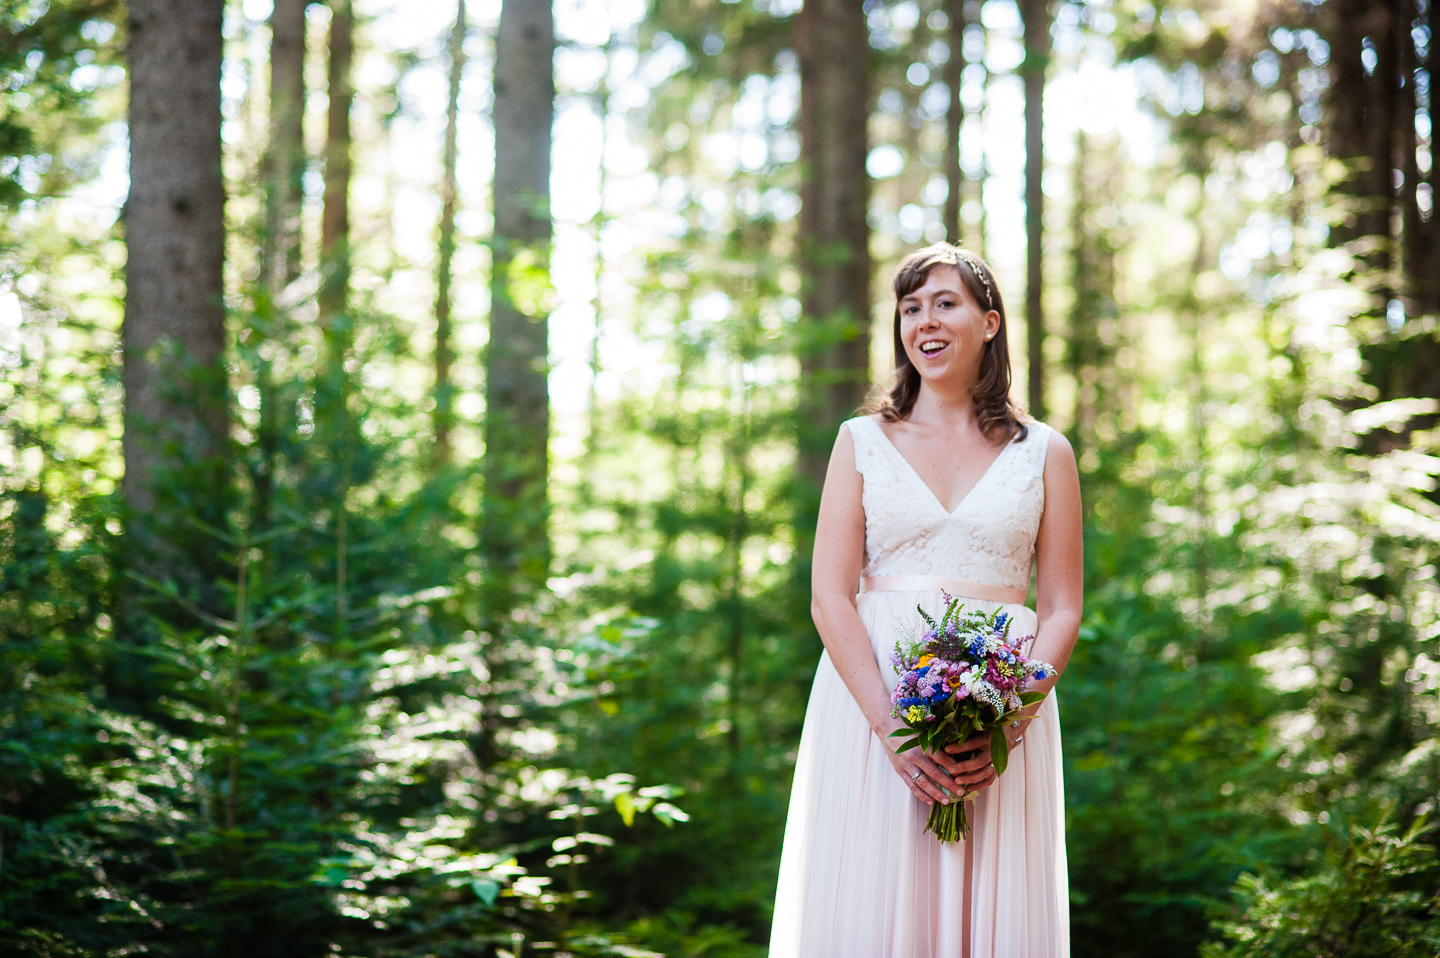 Gorgeous bride poses for a bridal portrait in the woods